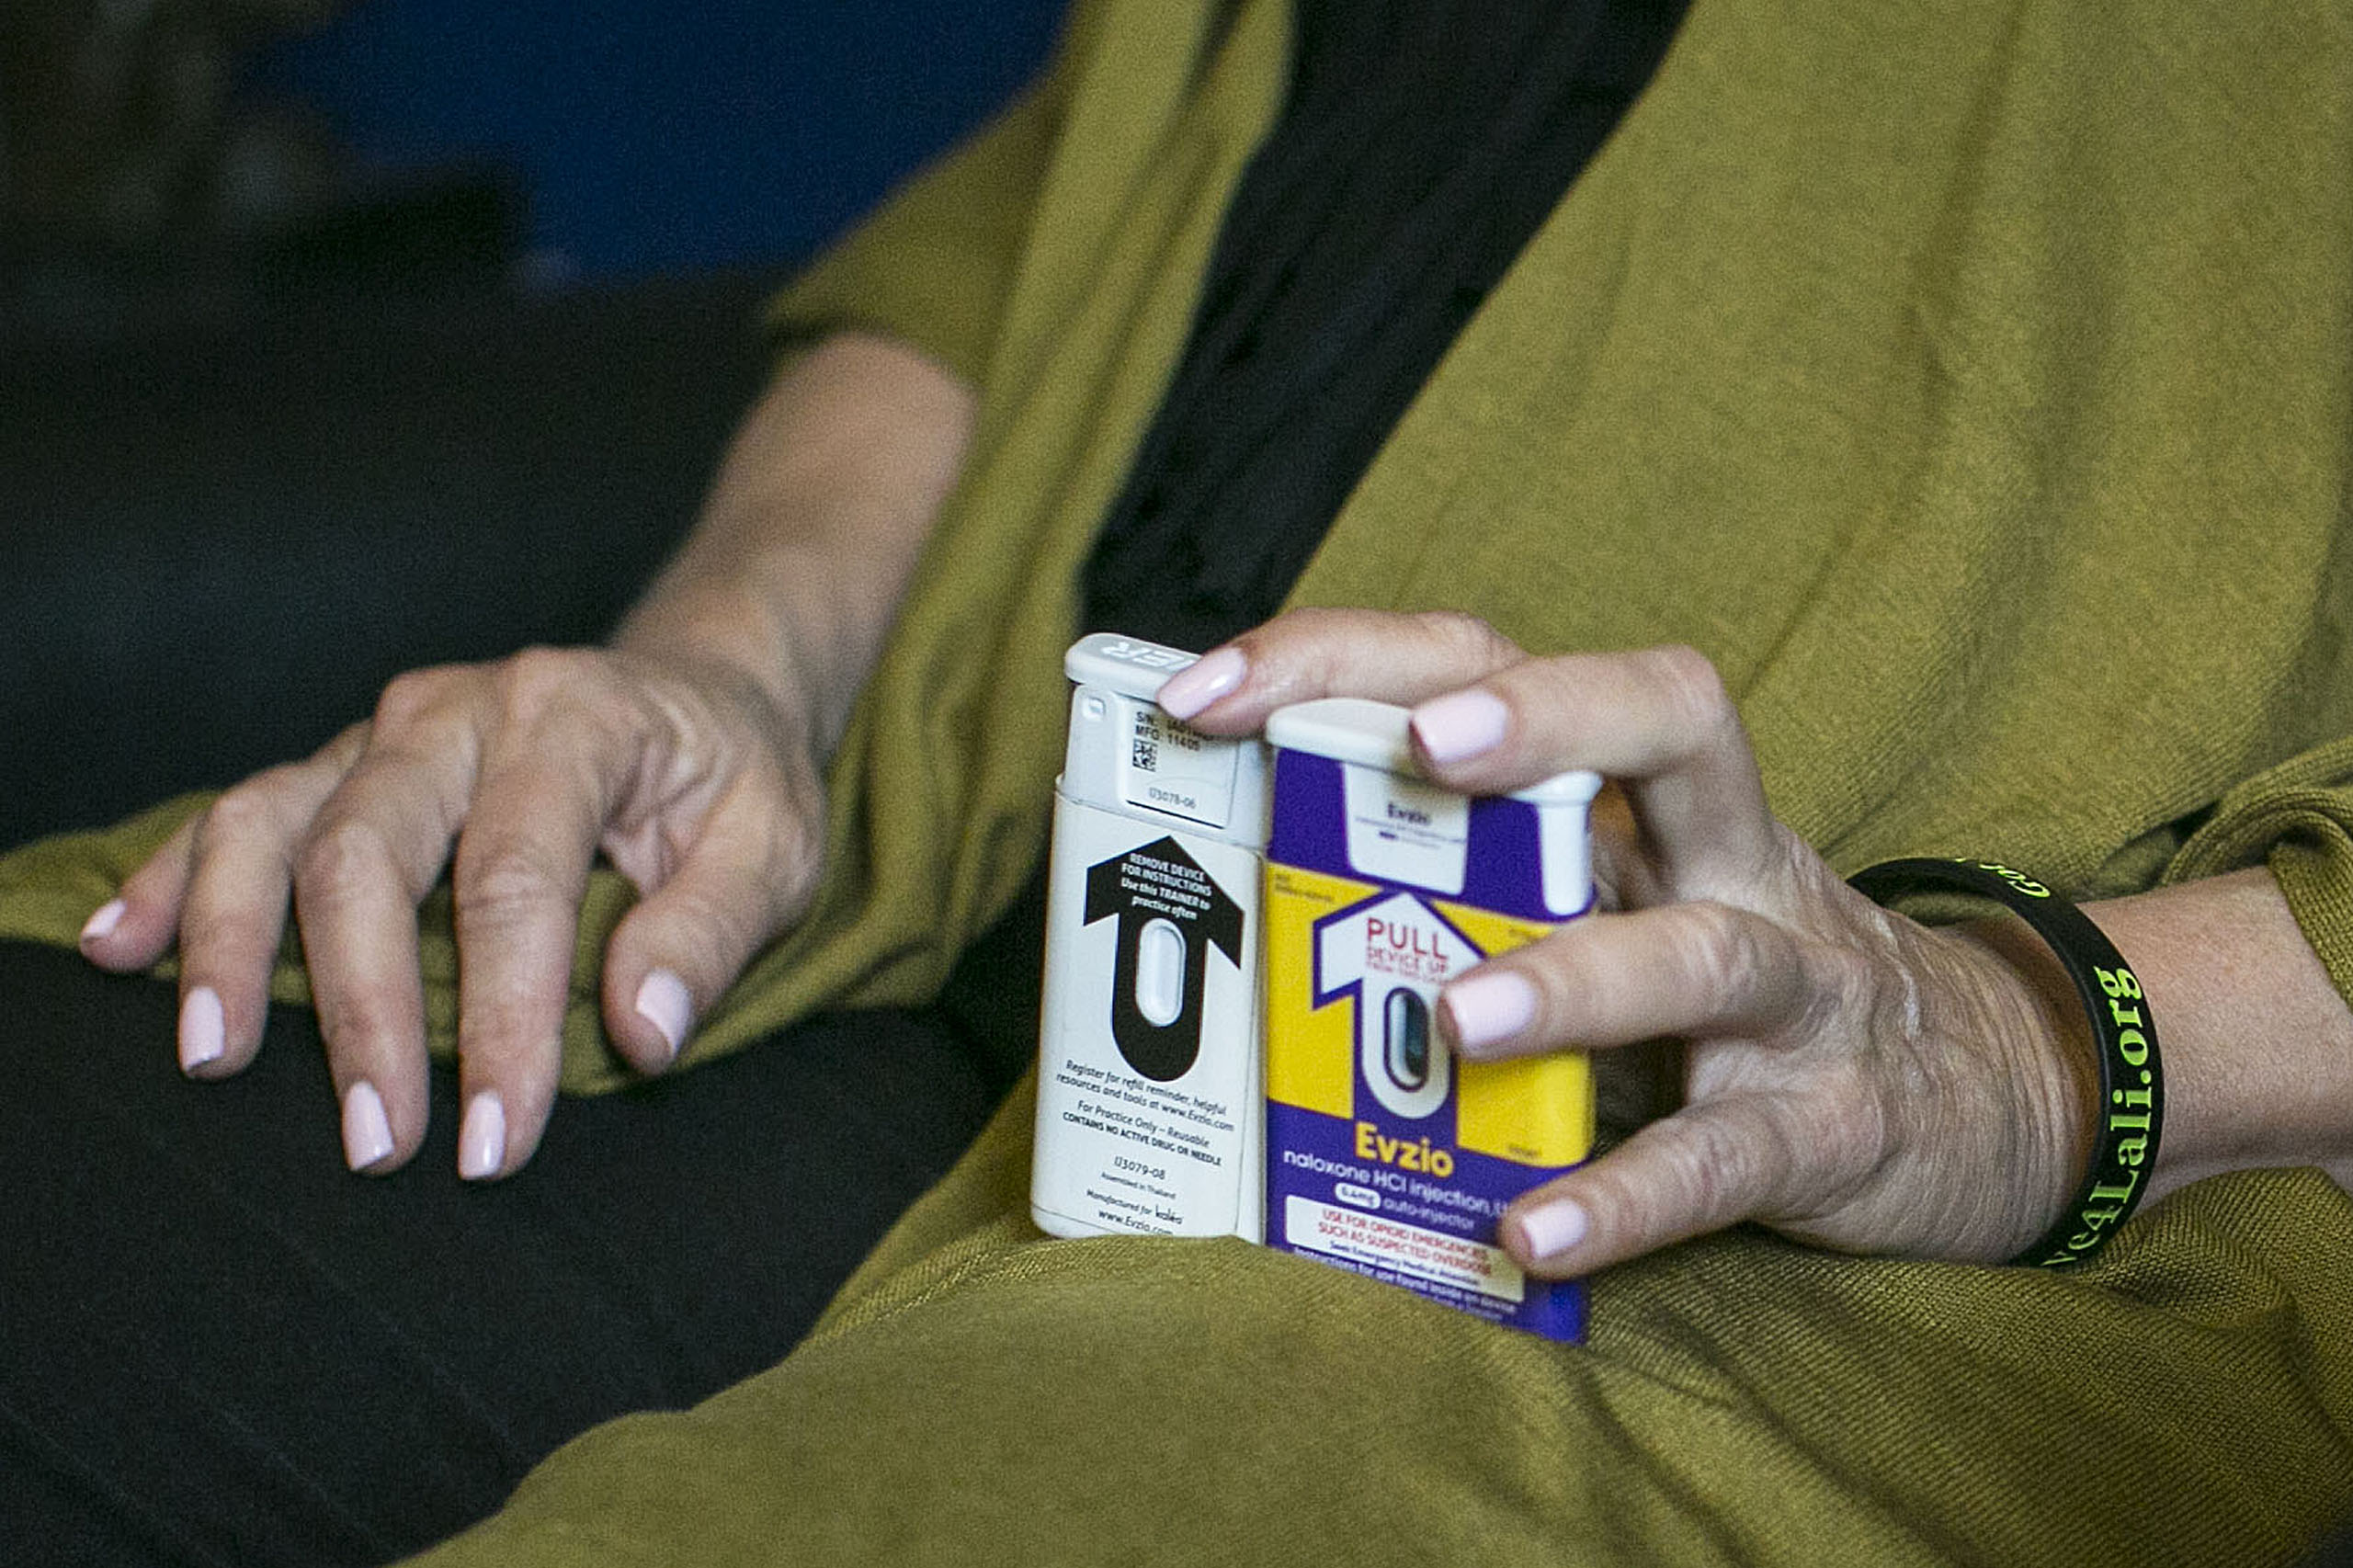 Jody Daitchman holds two versions of Naloxone, also known as Narcan, which combat drug overdoses, in Washington, on May 11, 2016.